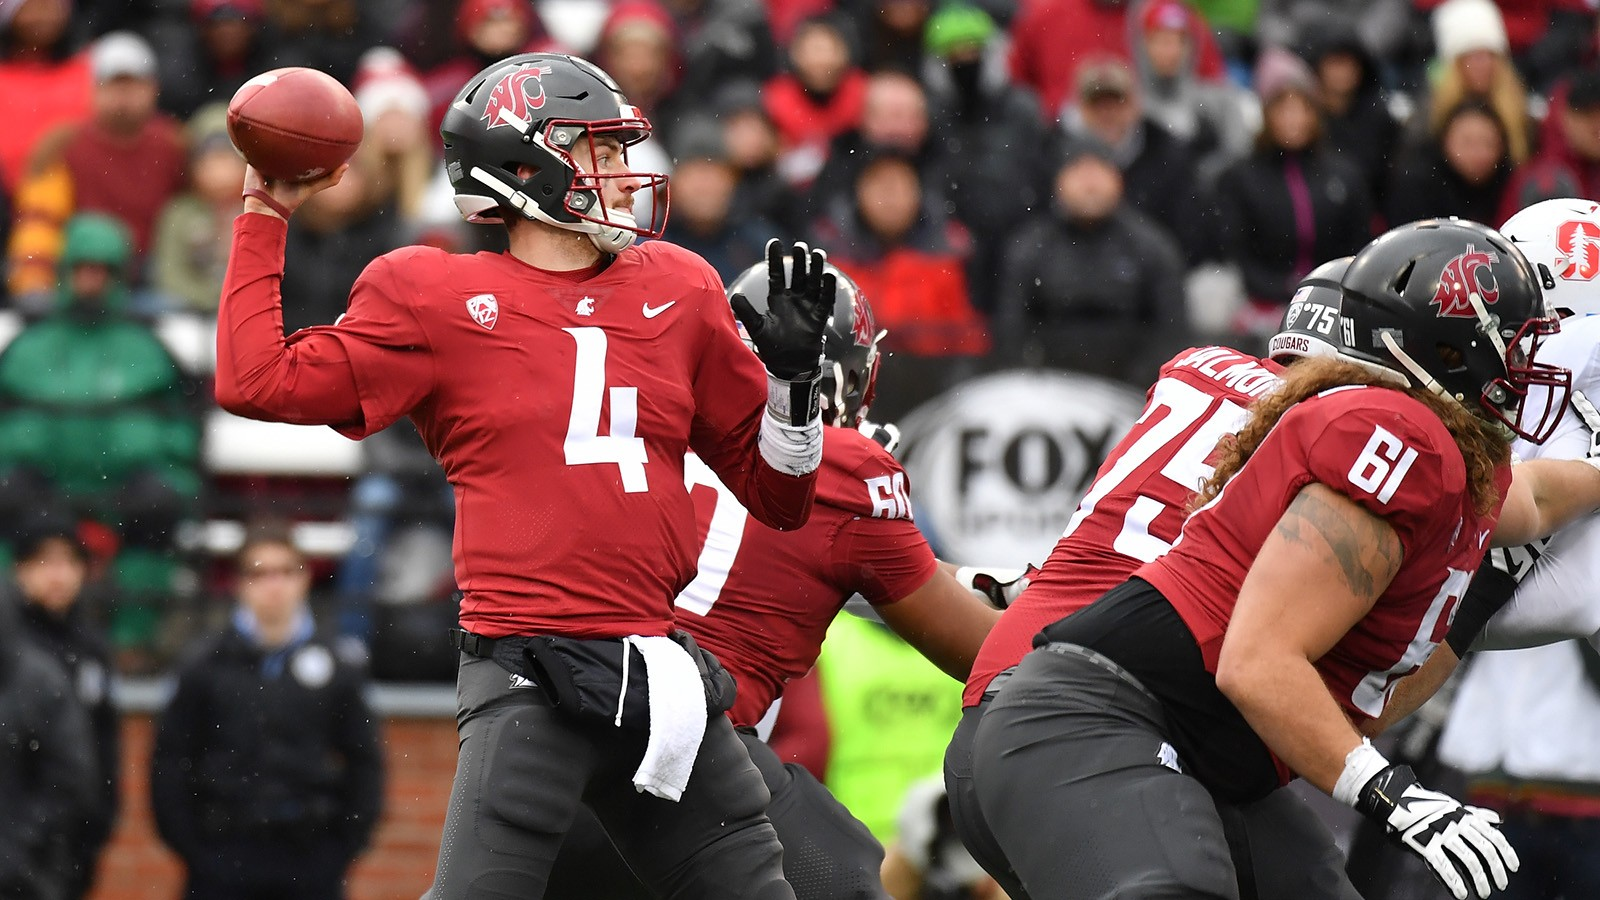 ... Falk leads WSU to victory keeps up assault on Pac 12 NCAA record